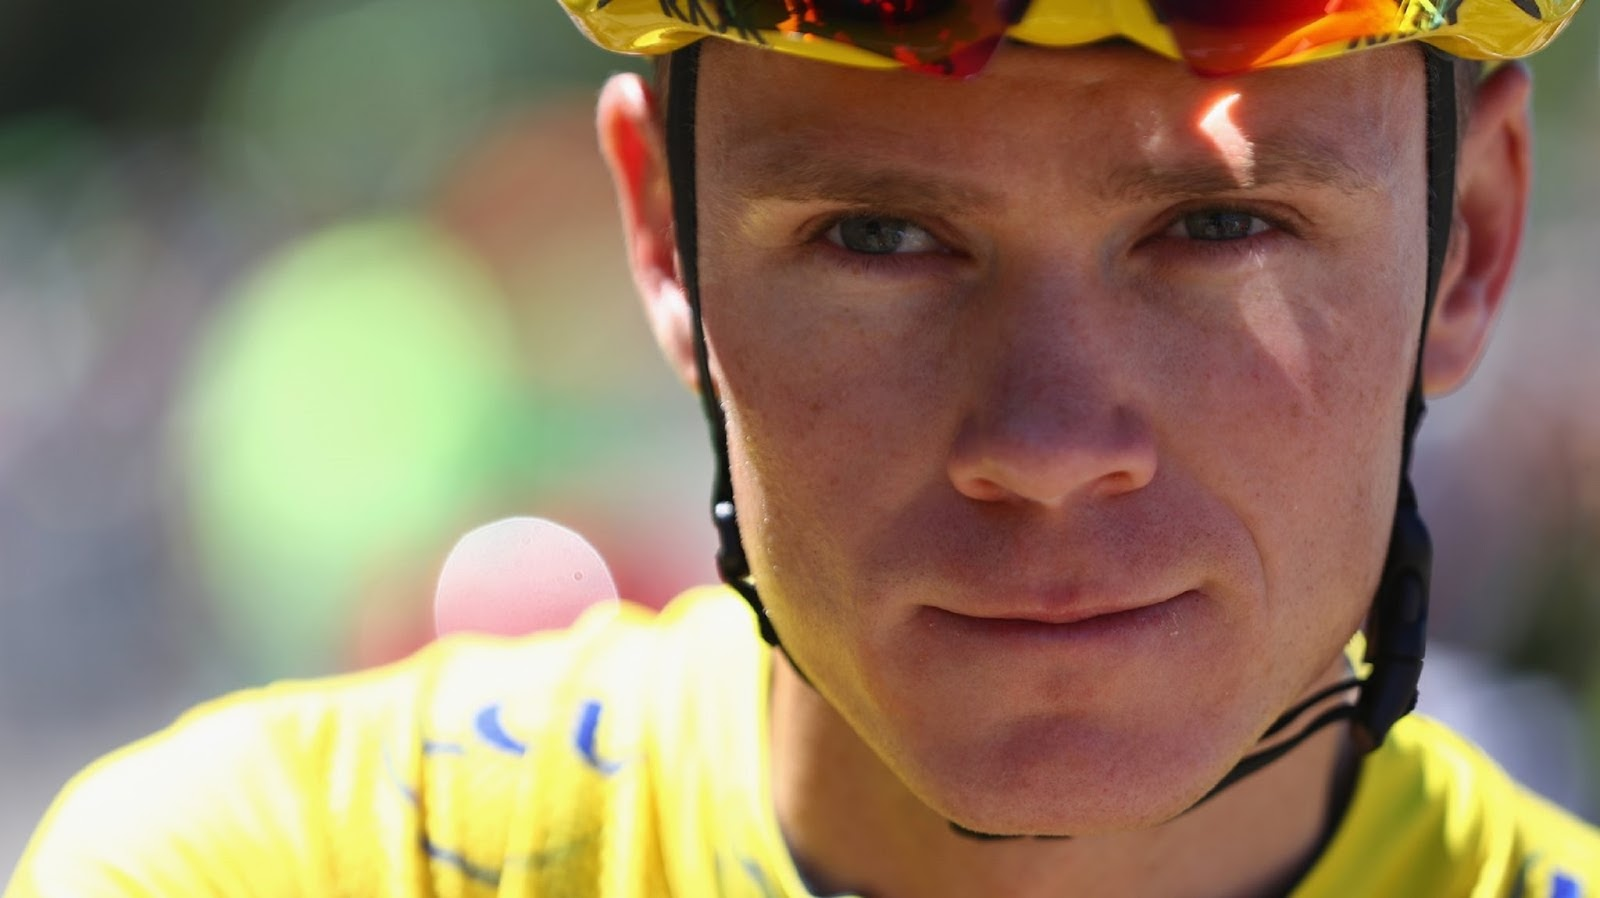 CHRIS FROOME 7